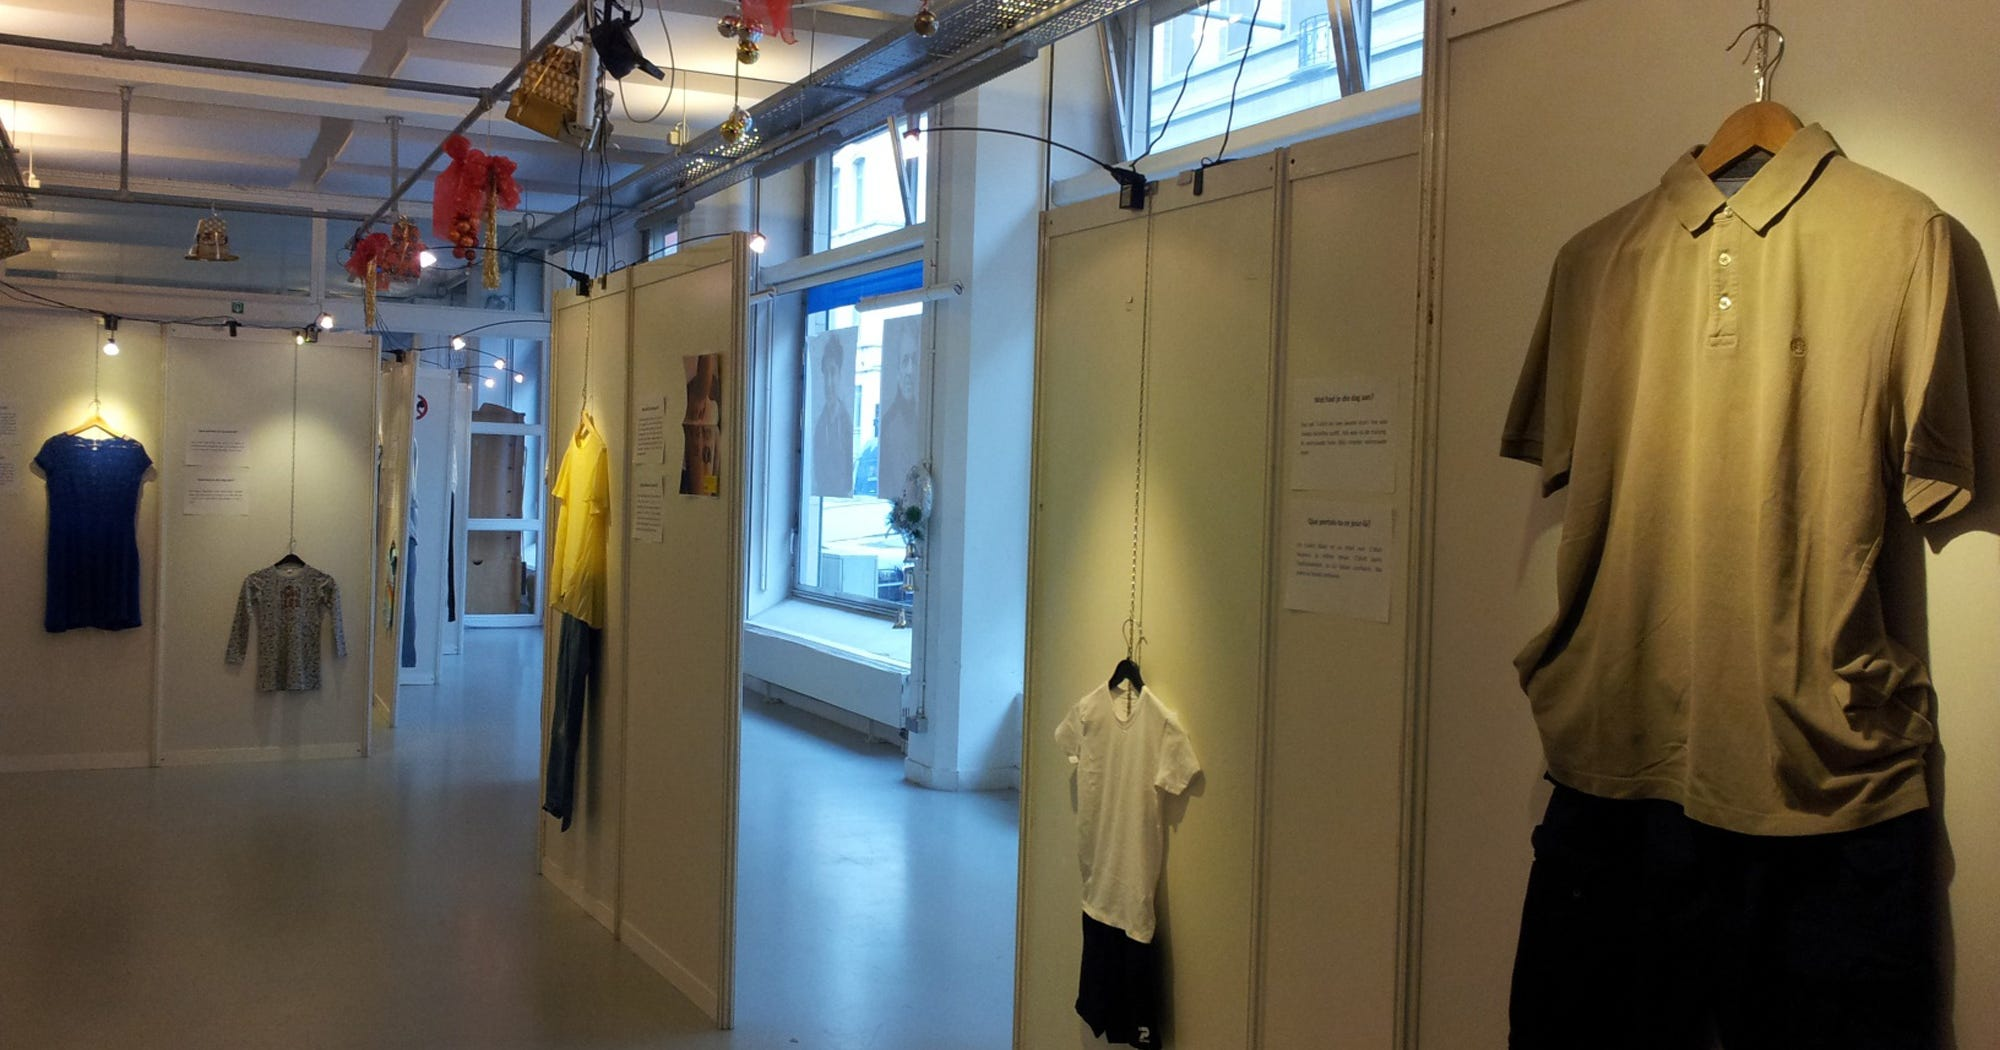 The Clothes People Wore When They Were Raped Feature In New Exhibition